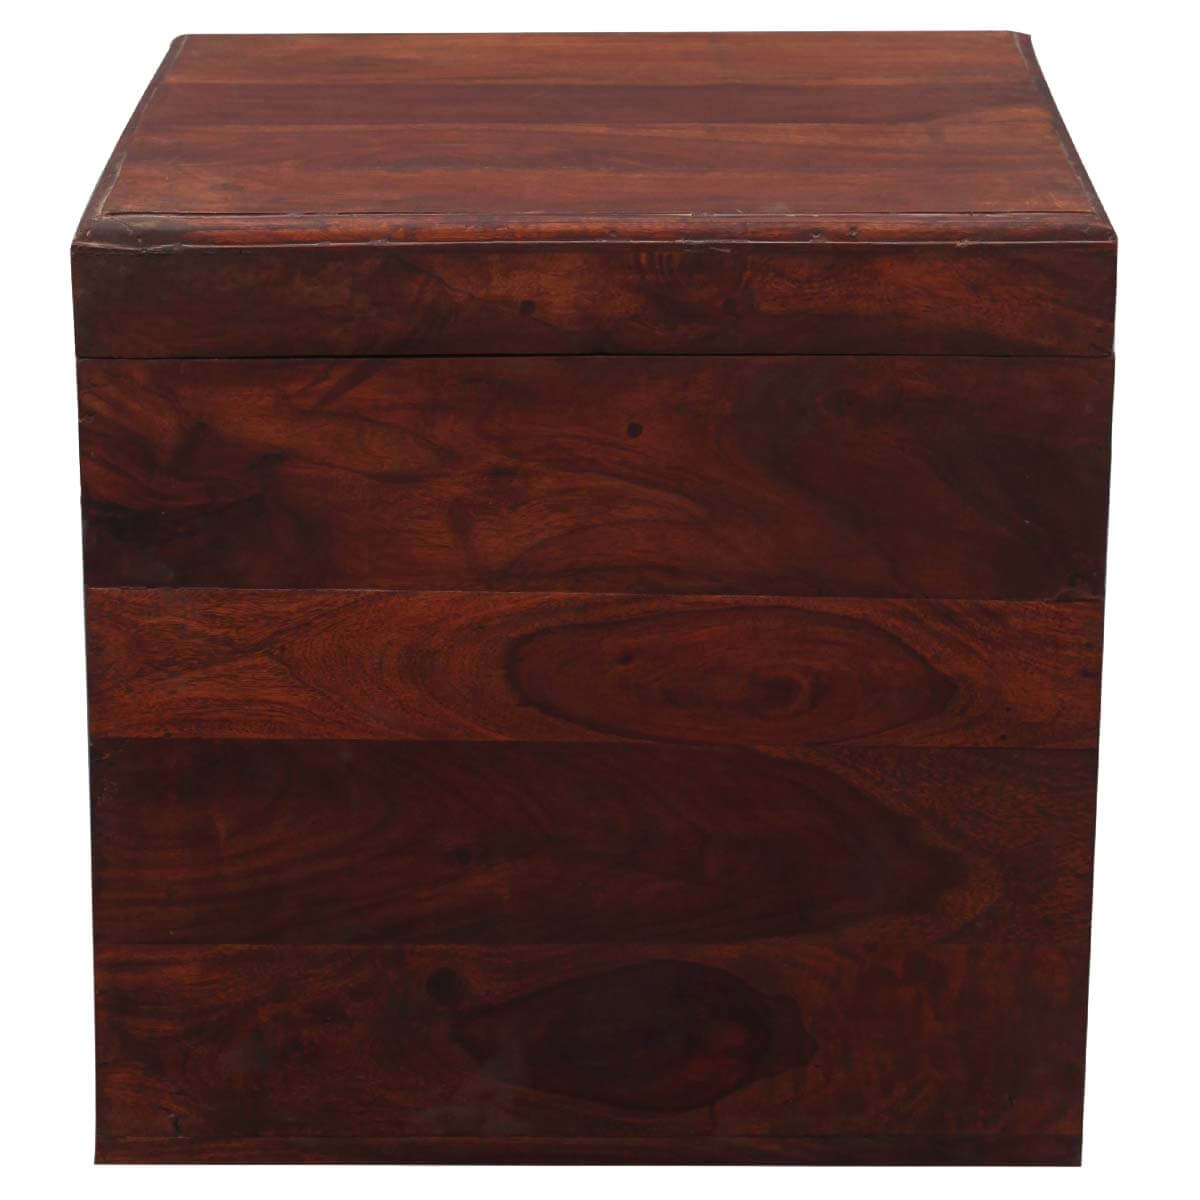 Box End Table Santa Fe 18 Quot Cube Solid Wood Storage Box End Table